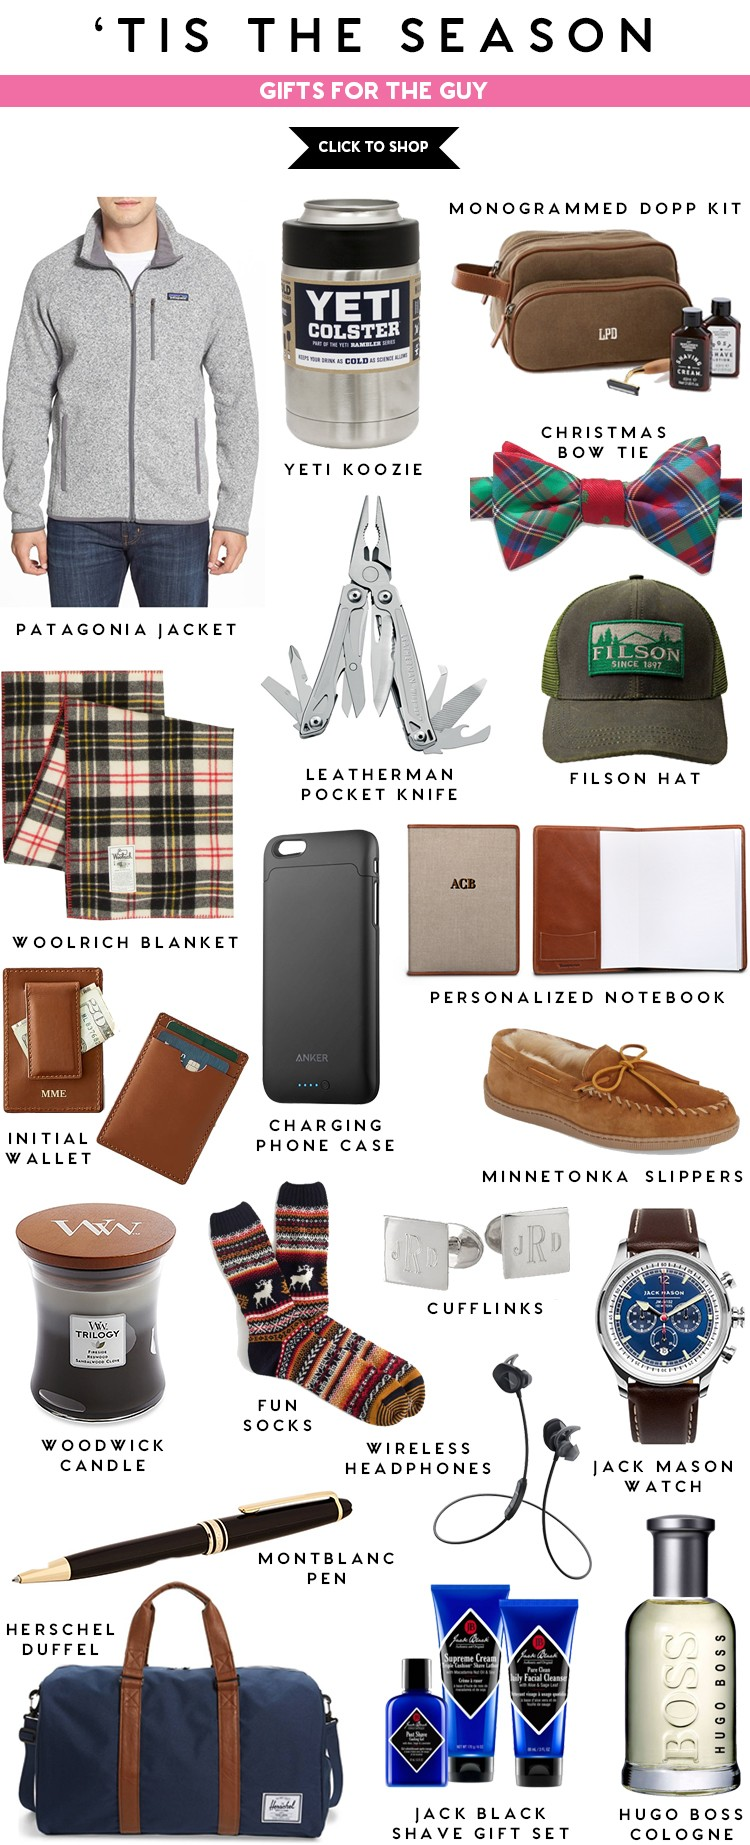 tis the season // gifts for the guy | a lonestar state of southern